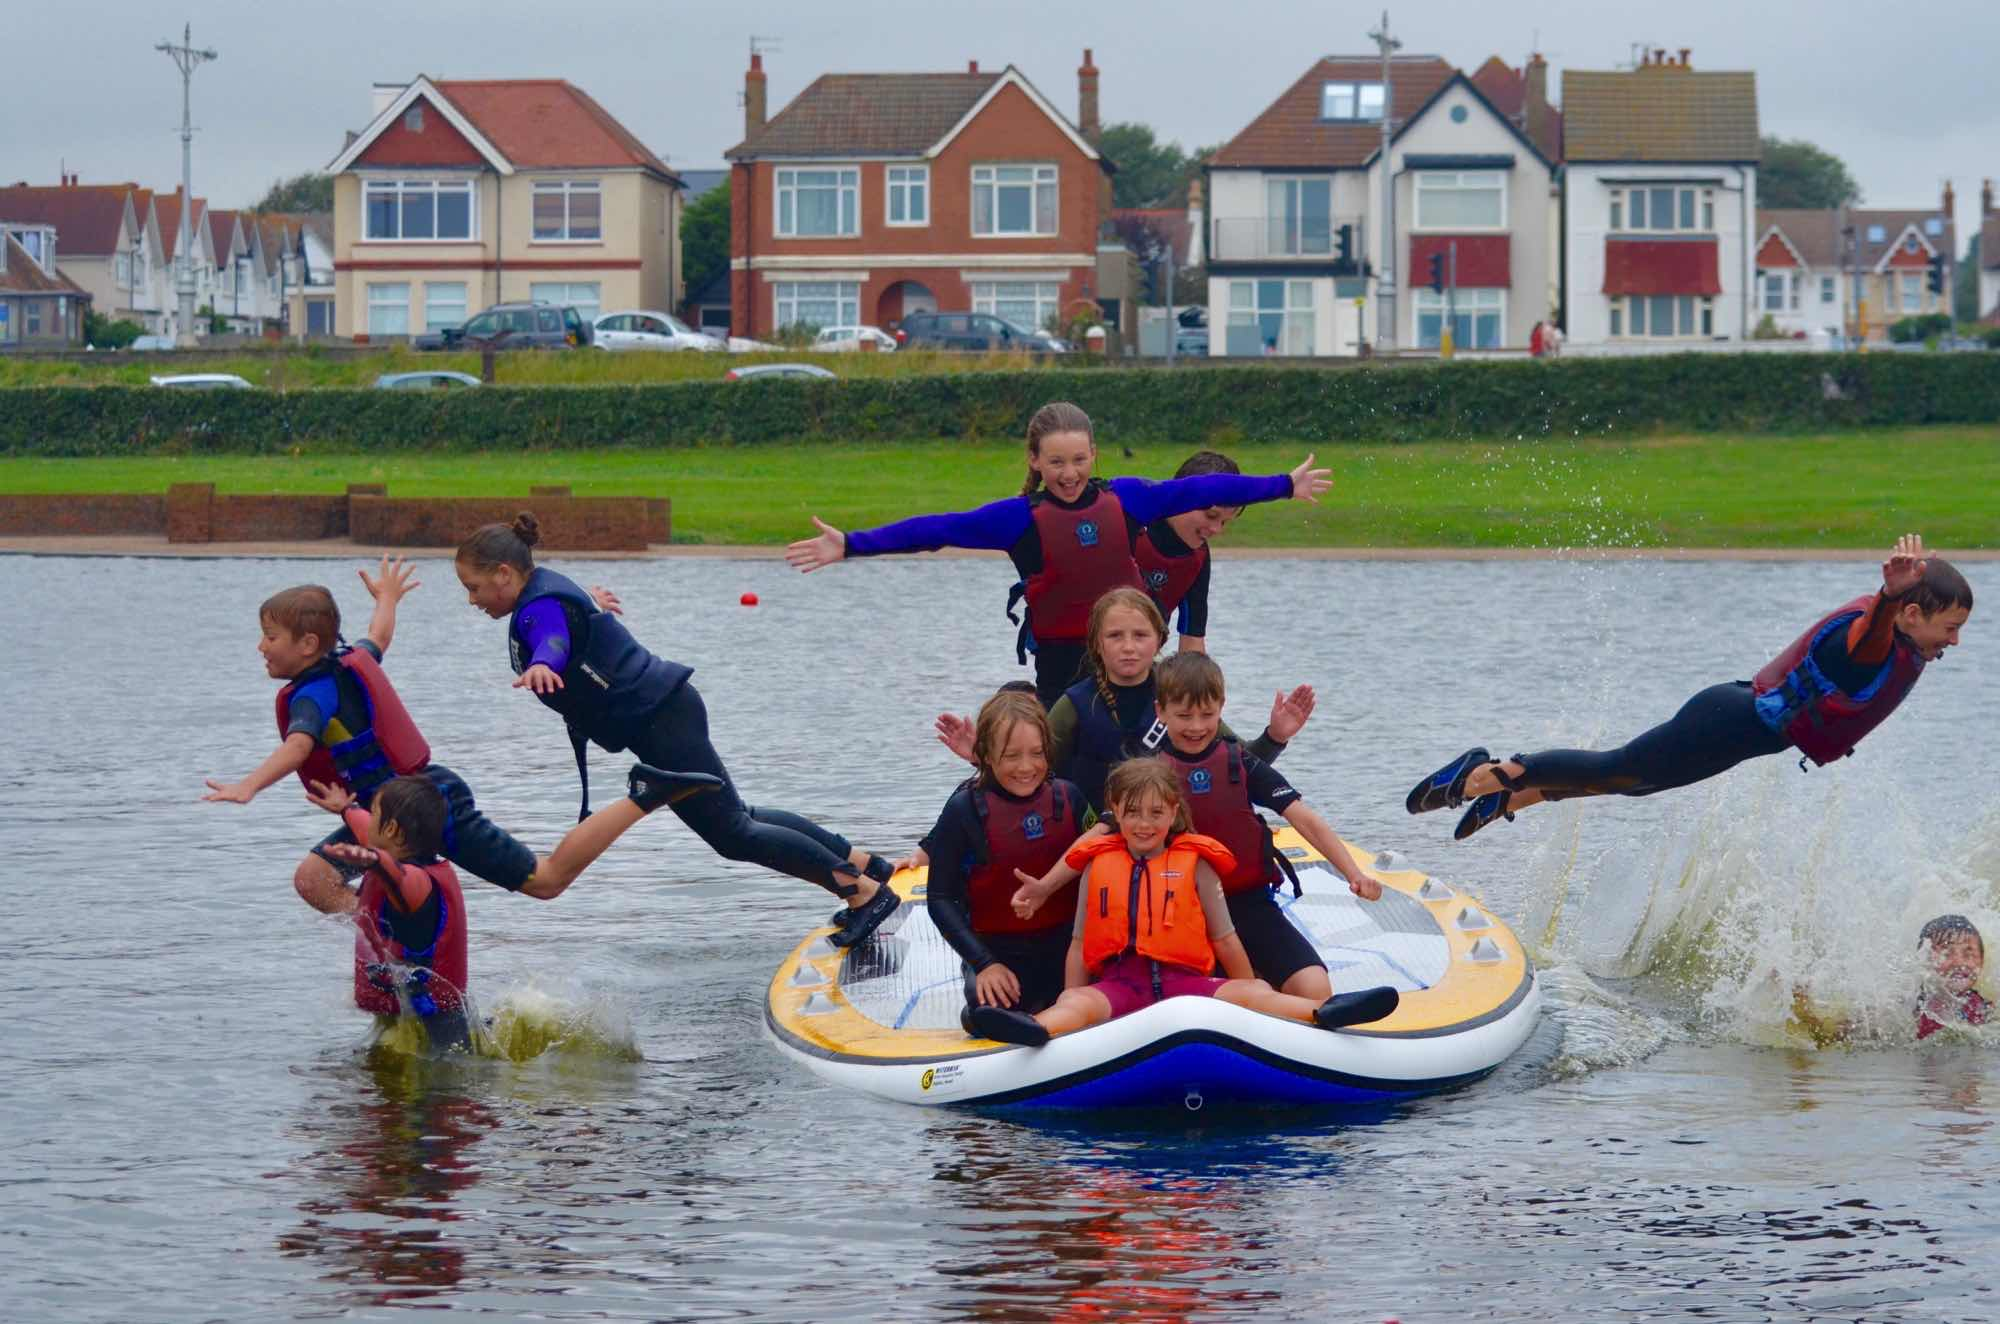 Make a Splash - Try your hand at stand-up paddleboarding, wakeboarding and lots of other water activities down at Hove Lagoon. Lagoon Watersports run lots of sessions and activity weeks for kids too, and you can even give SUP Yoga a go!